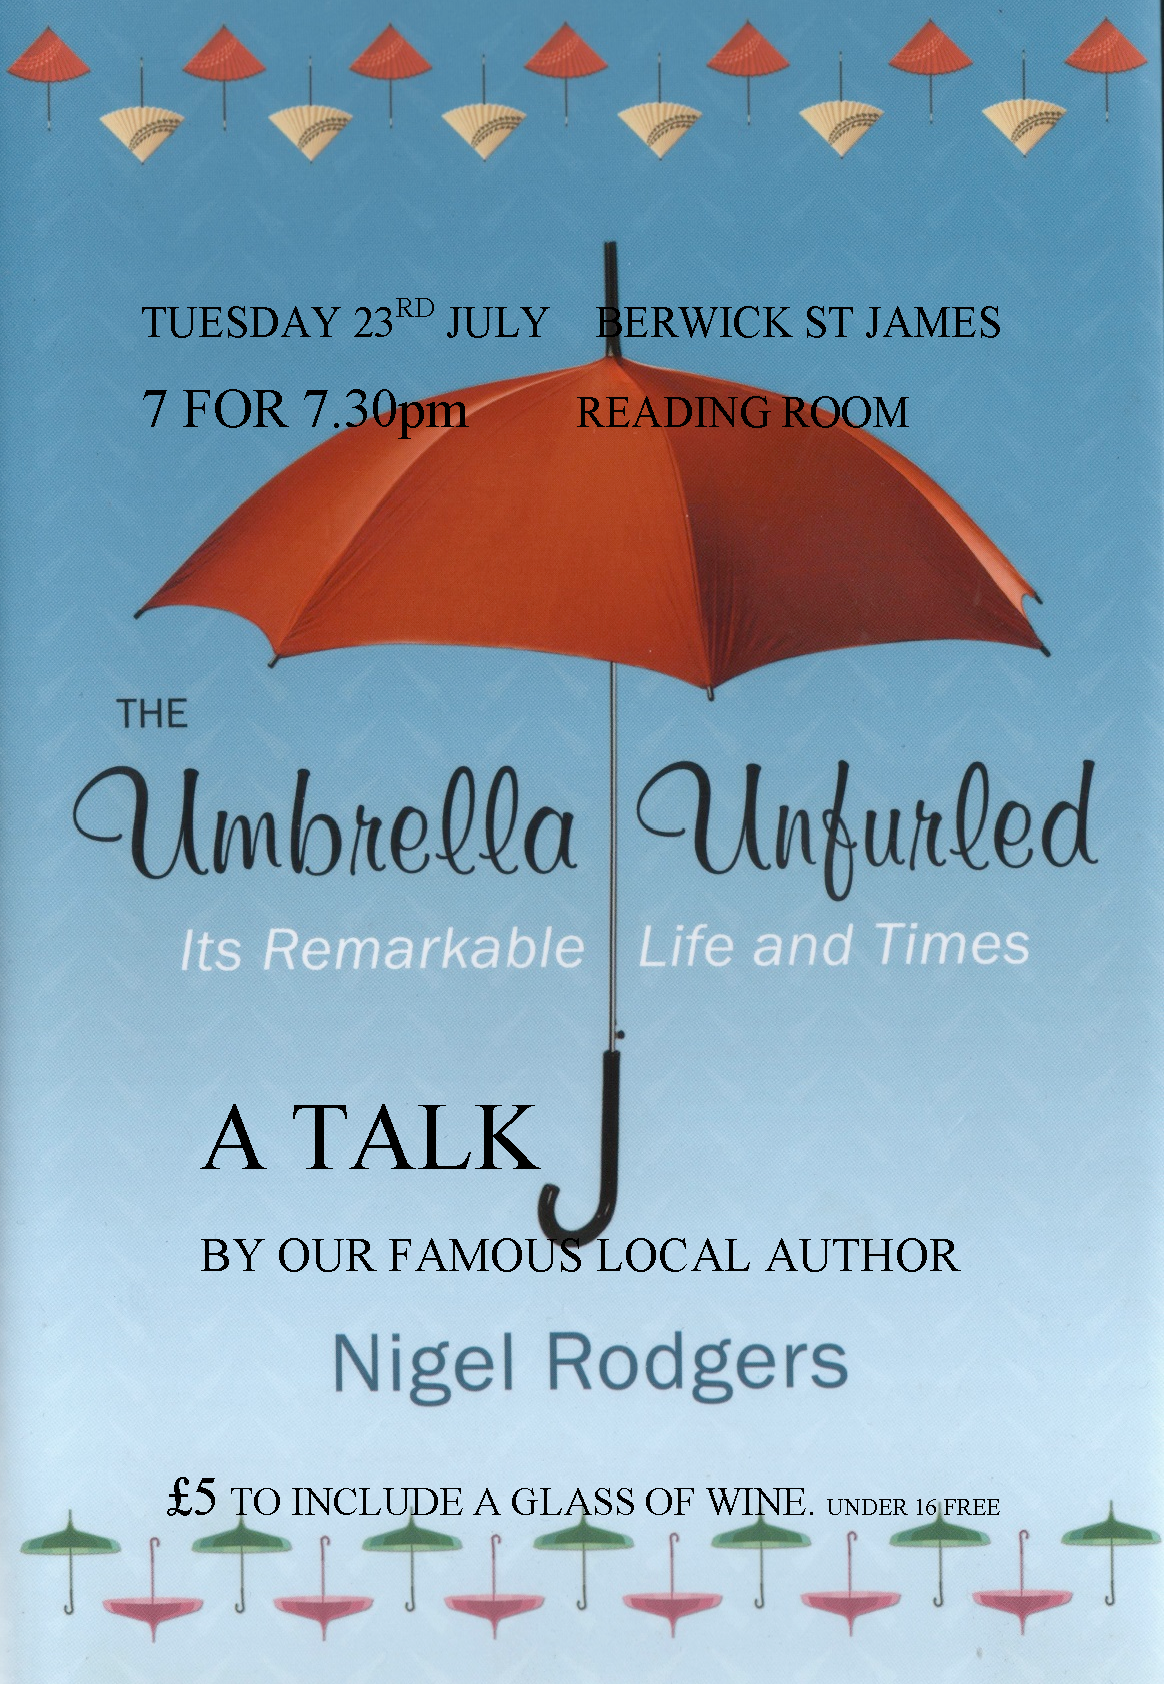 Berwick St James Parish Unbrella Unfurled